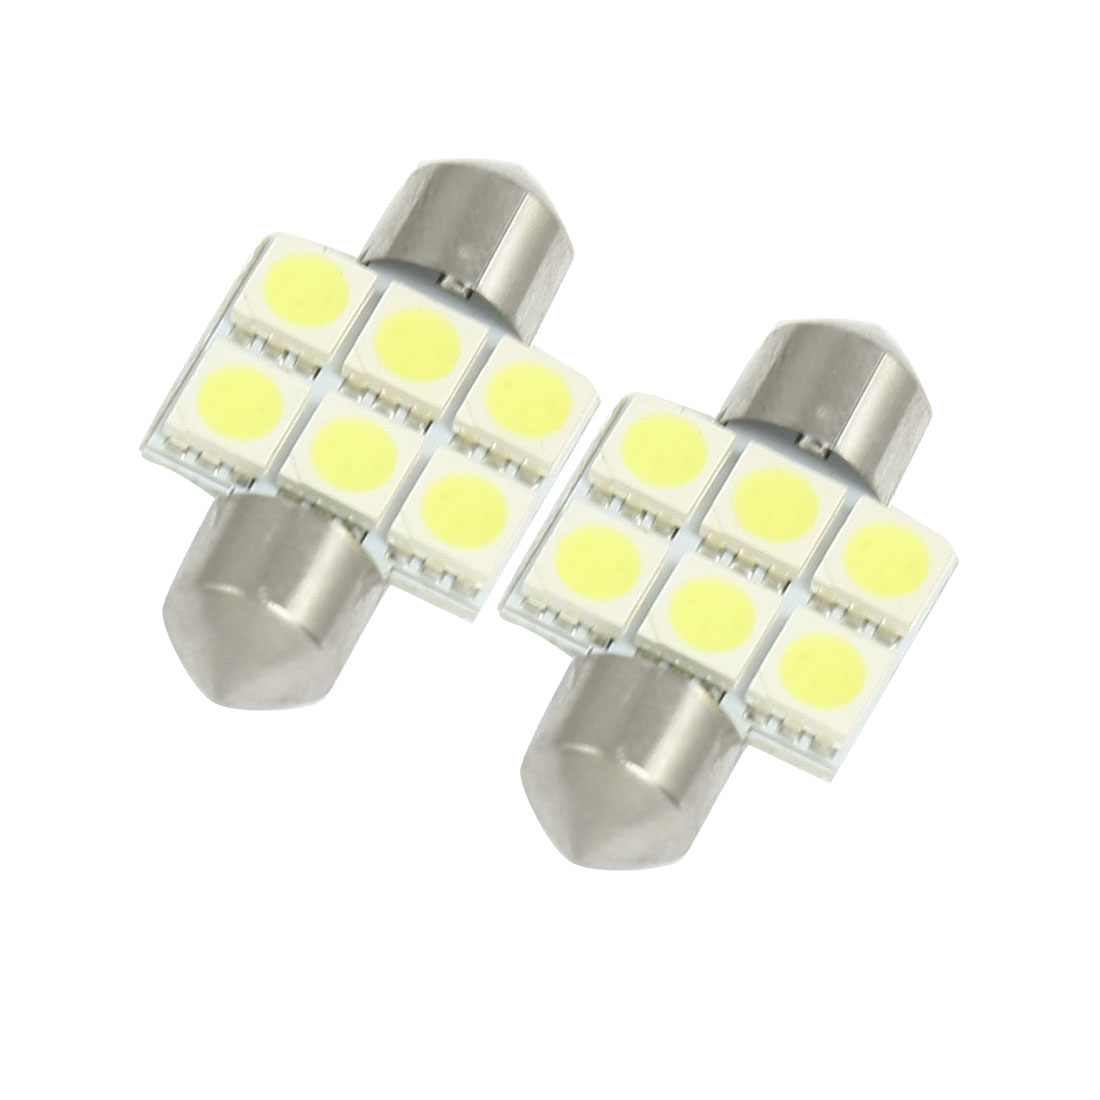 2 Pcs Car 31mm White 5050 SMD 6 LED Festoon Dome Light 3021 3022 Bulb DC 12V